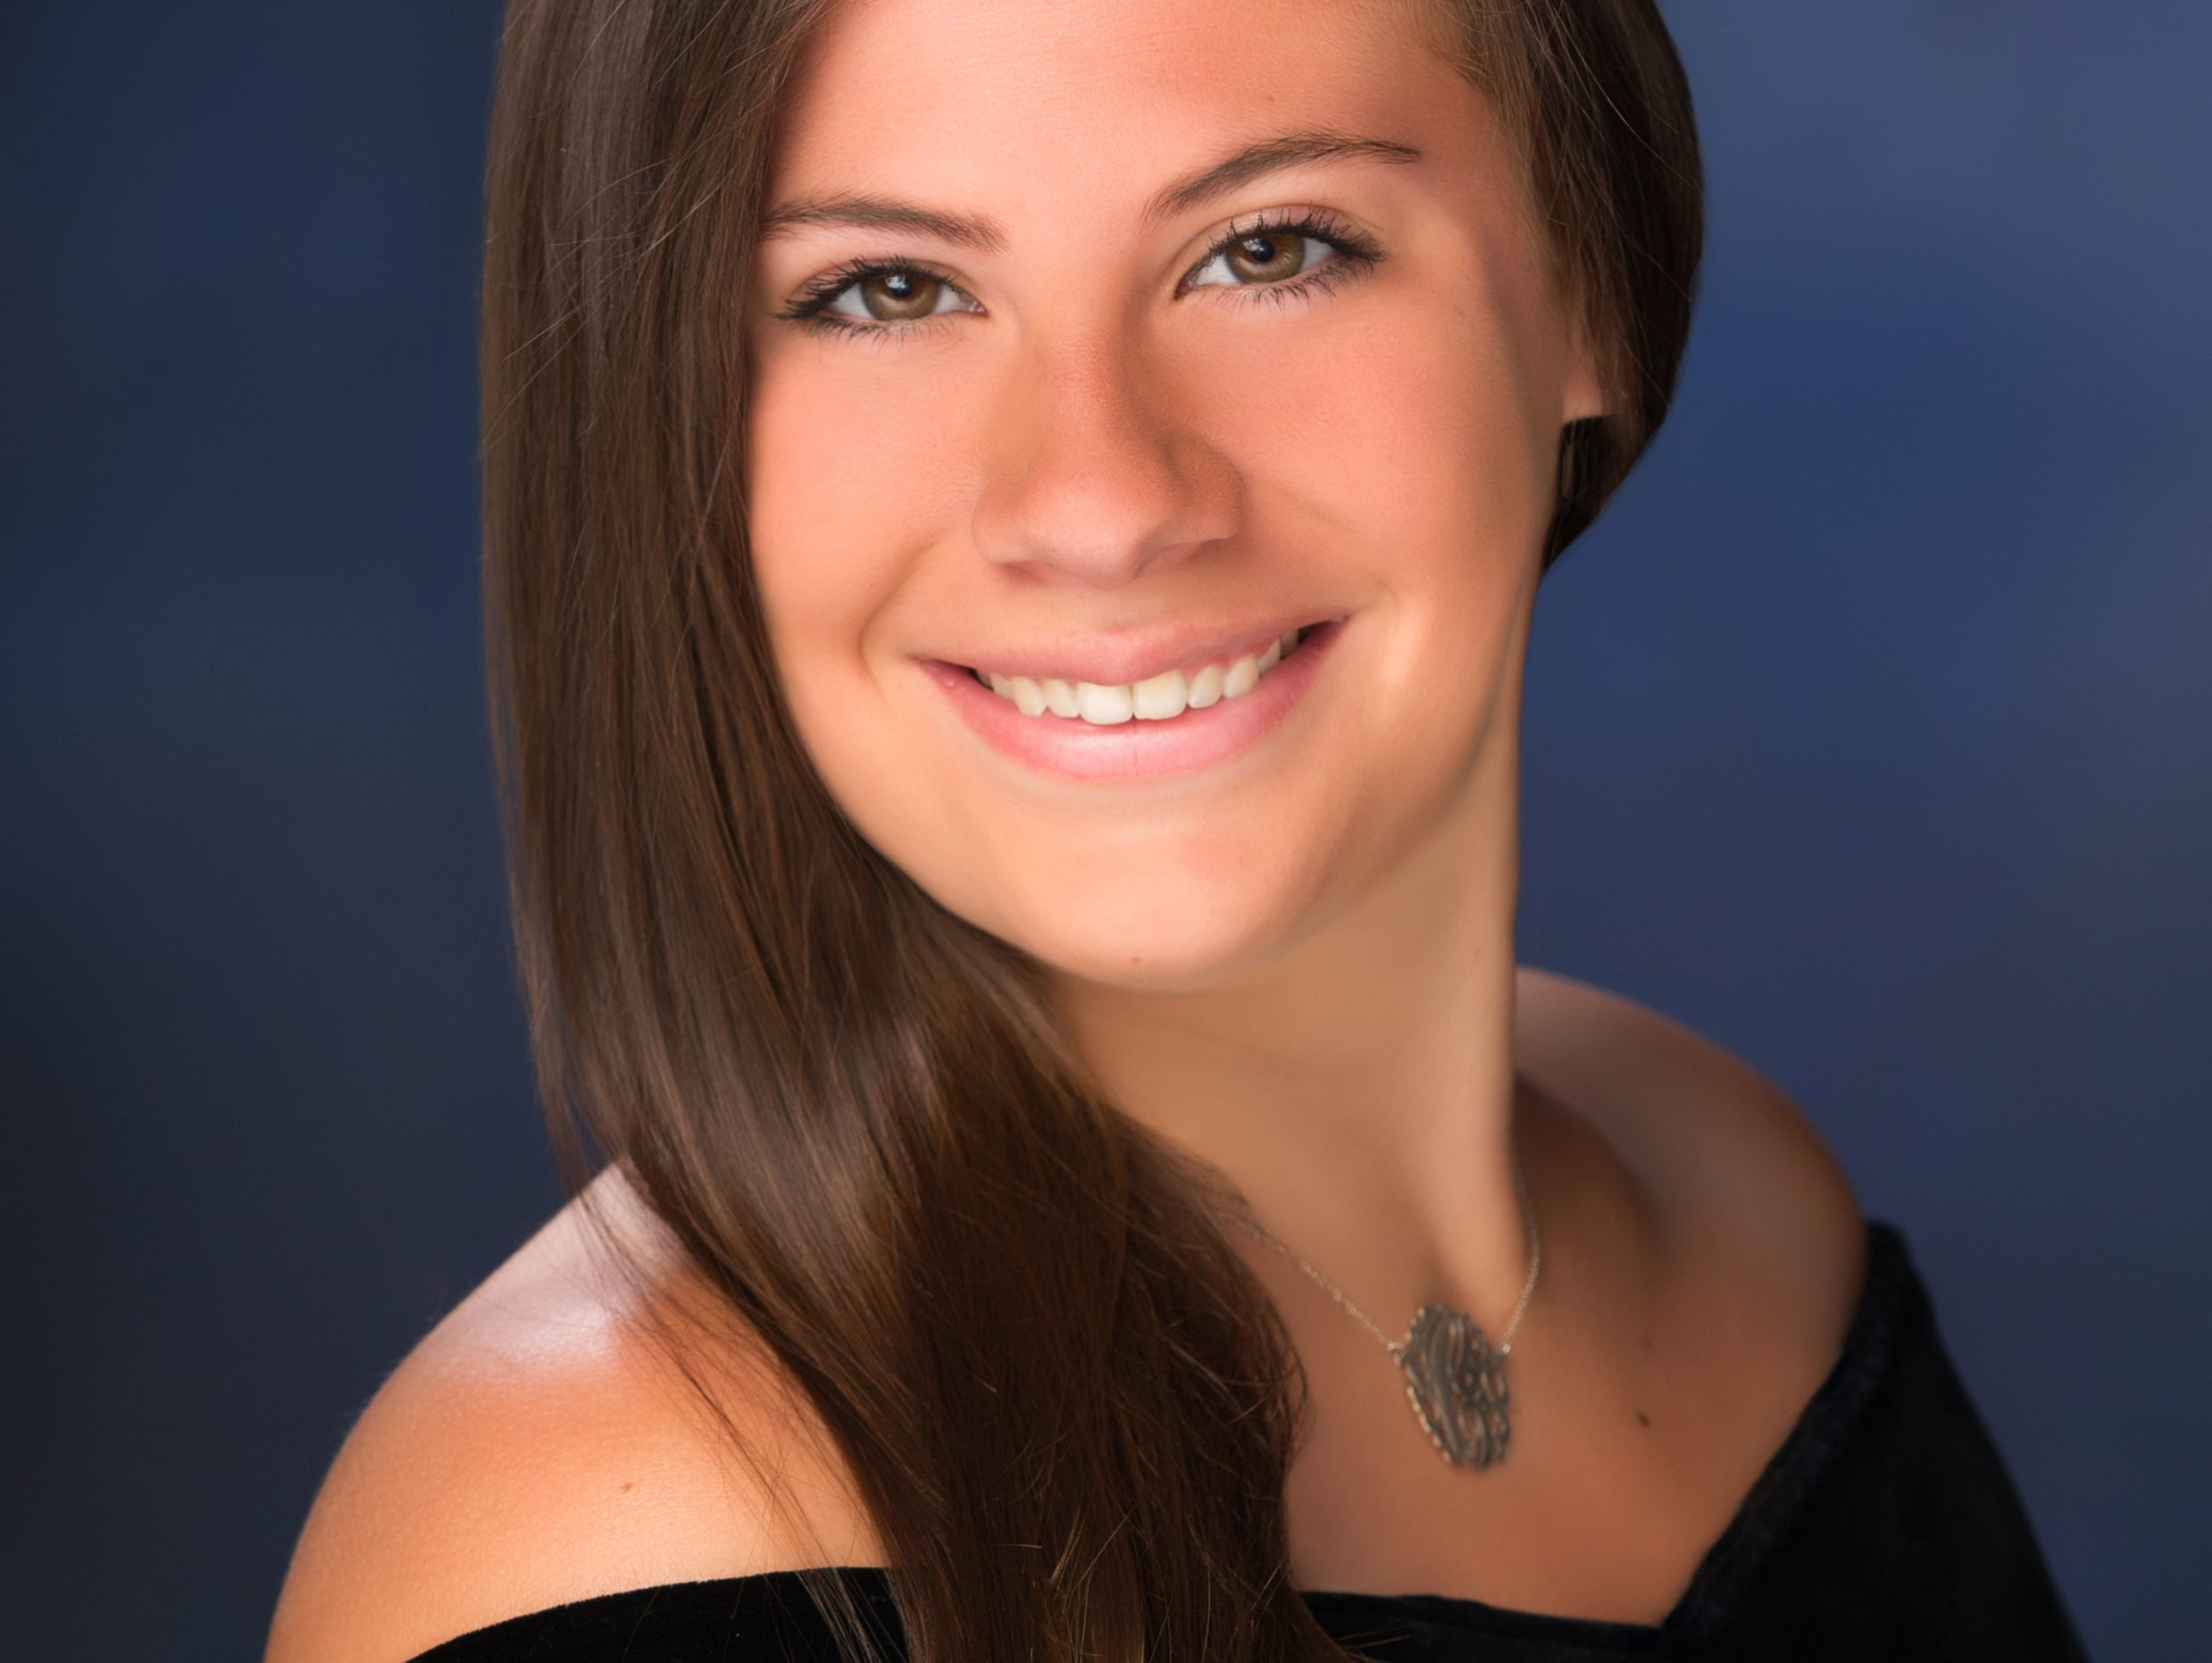 Clarkstown North volleyball's Carly Amatuzzo is this week's Rockland Scholar-Athlete